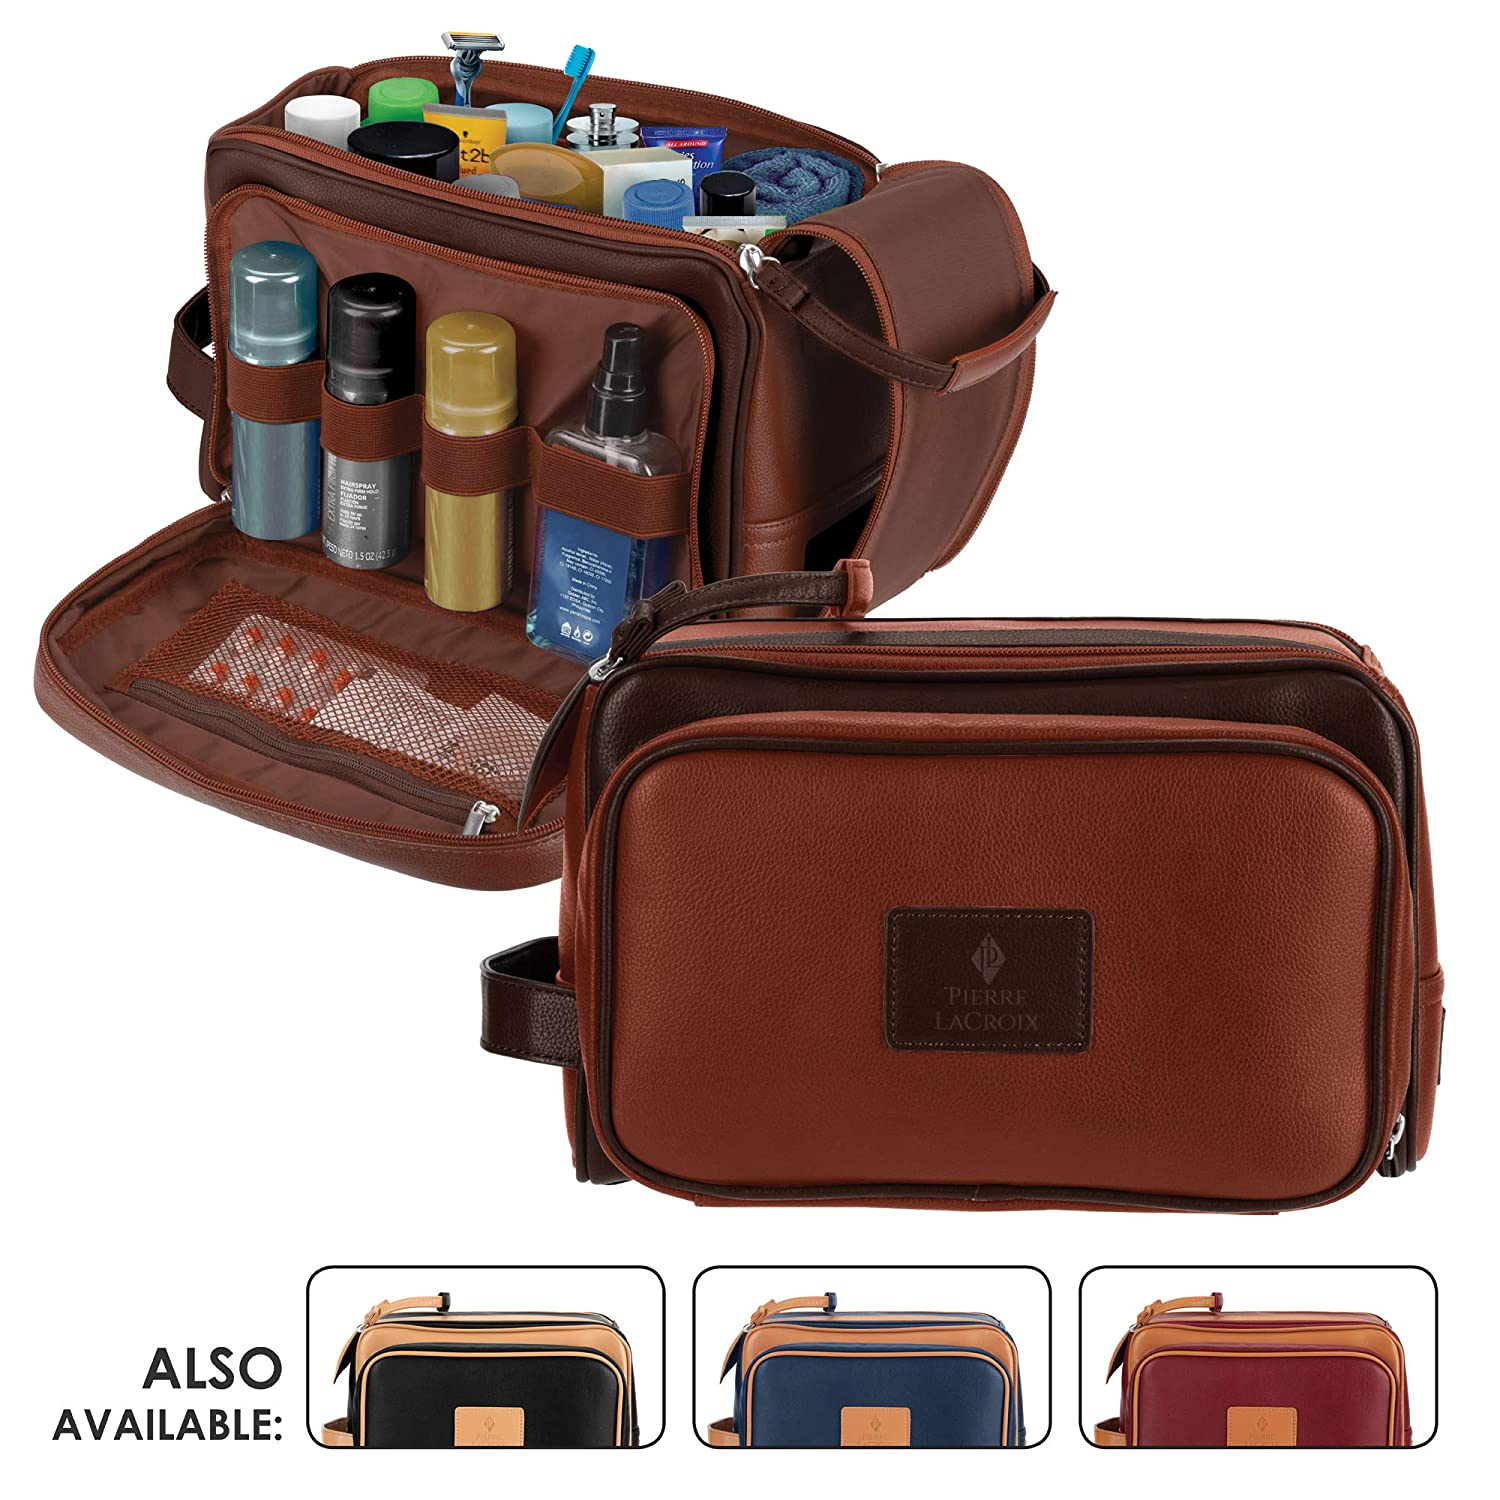 Cruelty-Free Leather Travel Toiletry Bag Dopp Kit by Pierre LaCroix Hand-Stitched Using Premium PU Leather and YKK Zippers Leak Proof 11 x7 x7